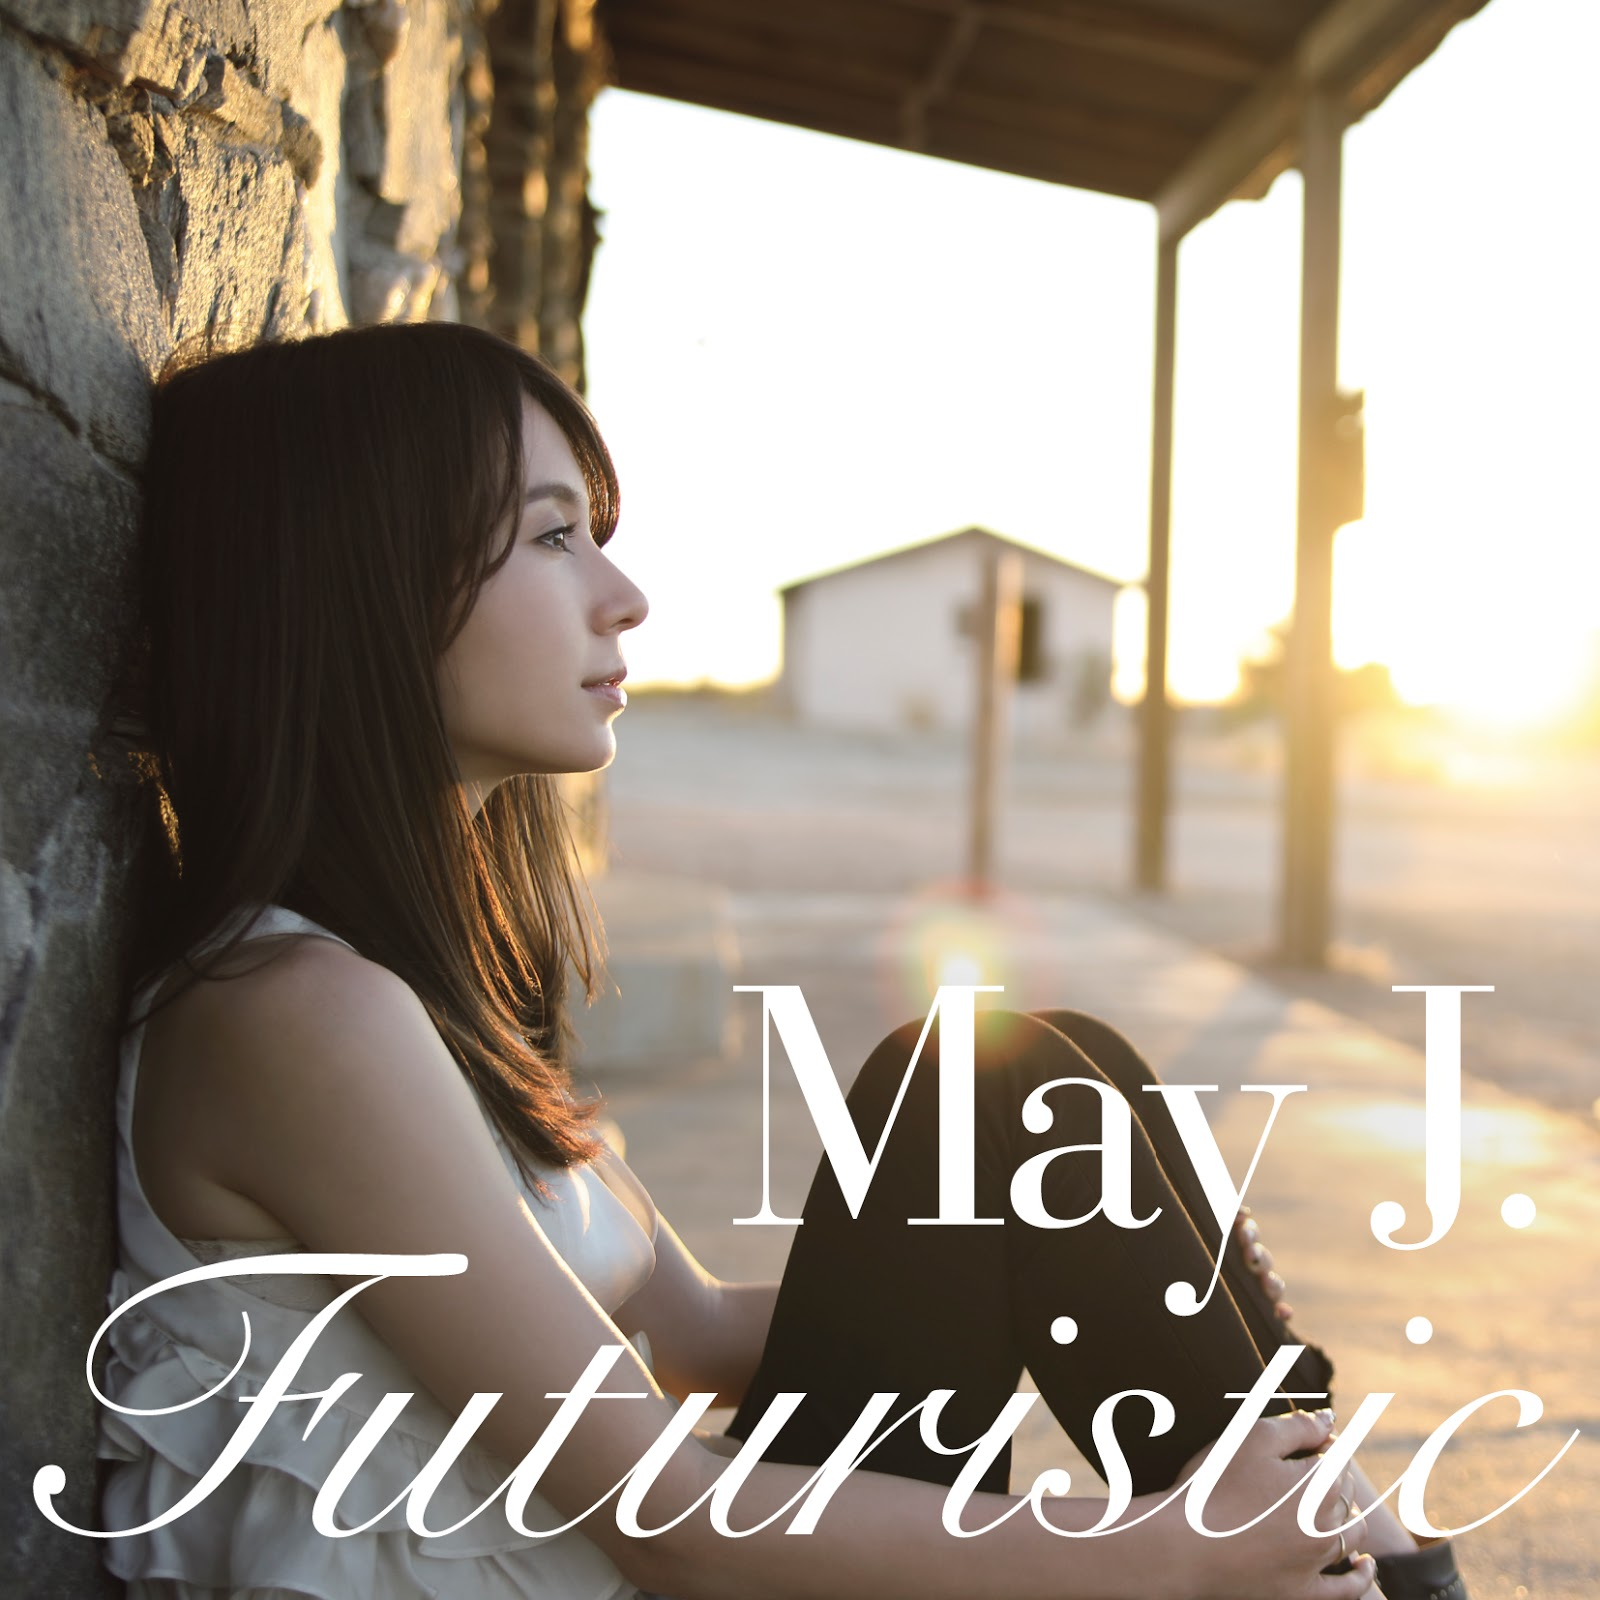 May j summer ballad covers download itunes